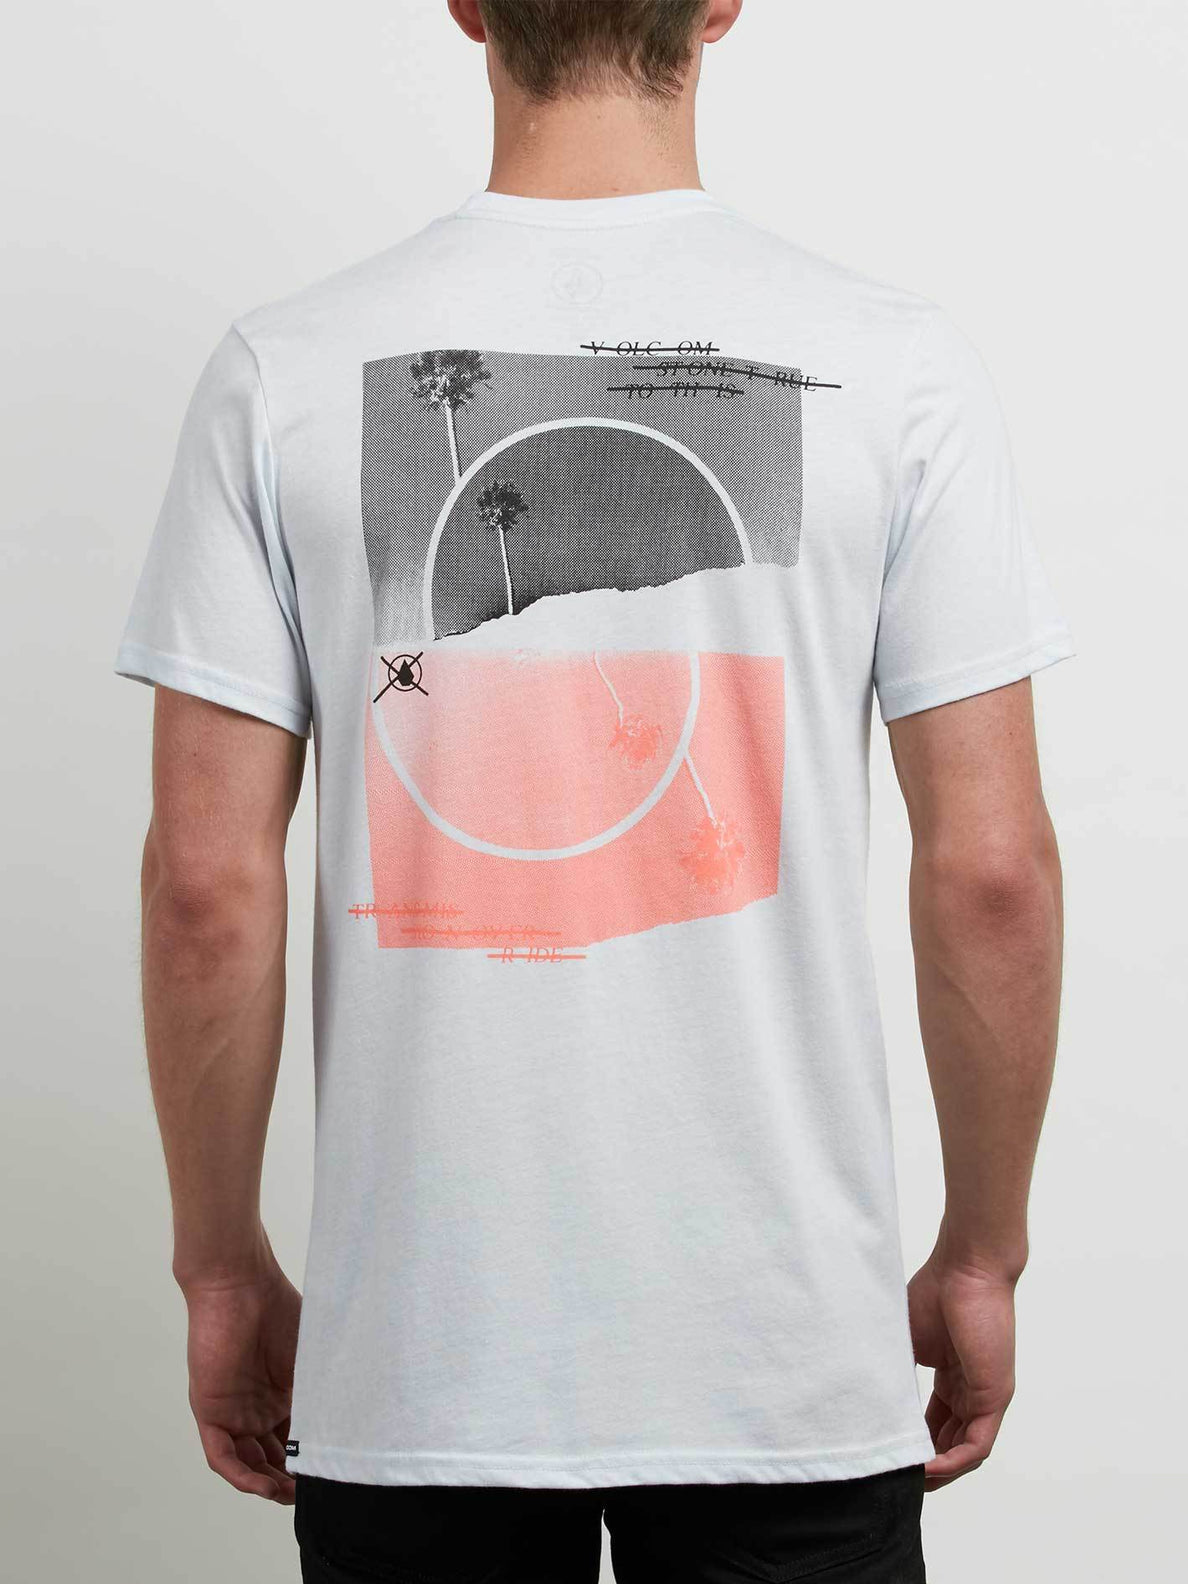 Over Ride Tee In White, Back View